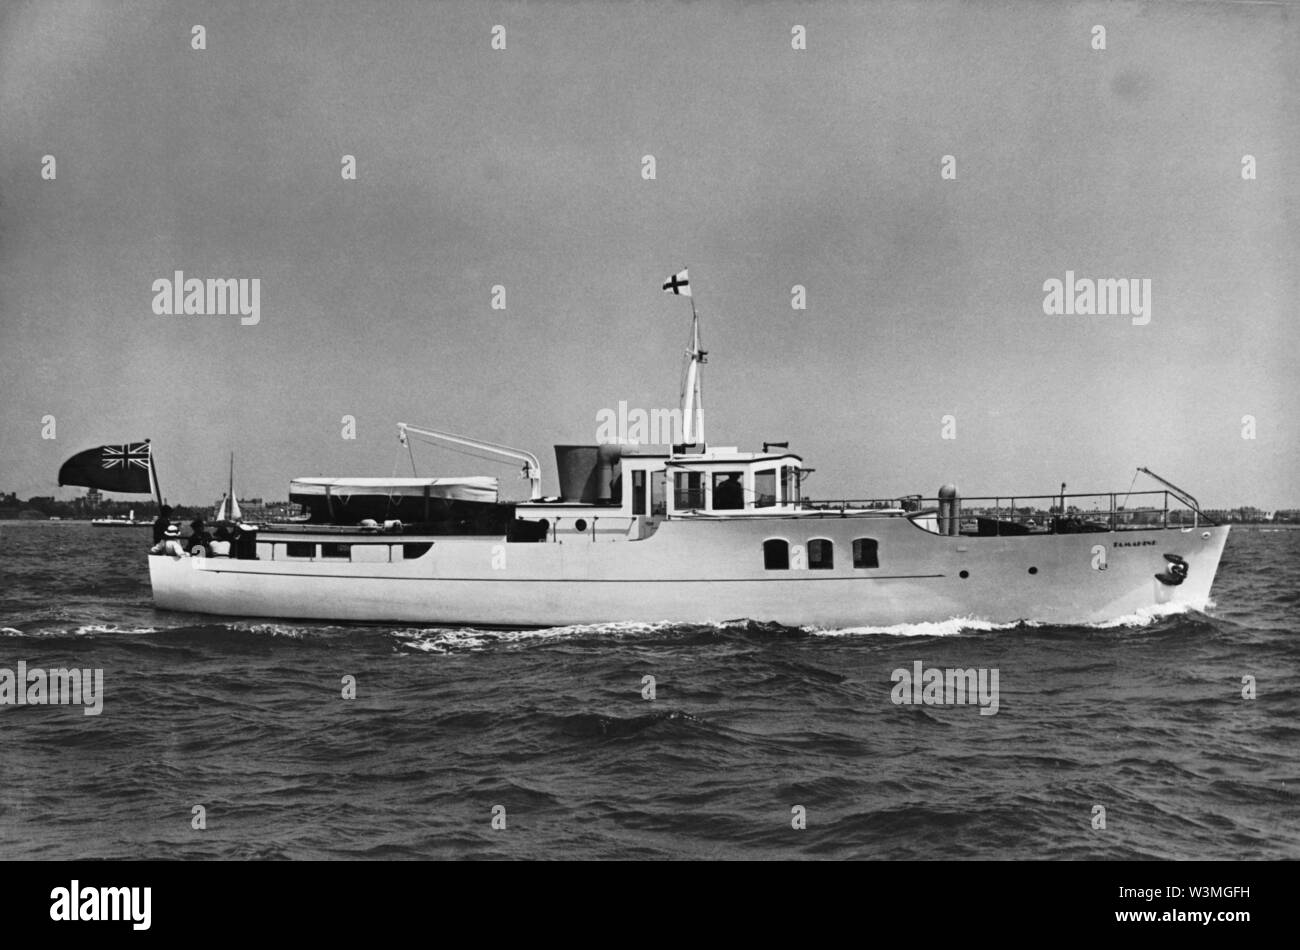 AJAXNETPHOTO. 1933. PORTSMOUTH, ENGLAND. - VOSPER YACHT ON TRIALS - TAMAHINE. PHOTO:VT COLLECTION/AJAX REF:HDD MOY TAMAHINE 1643 Stock Photo